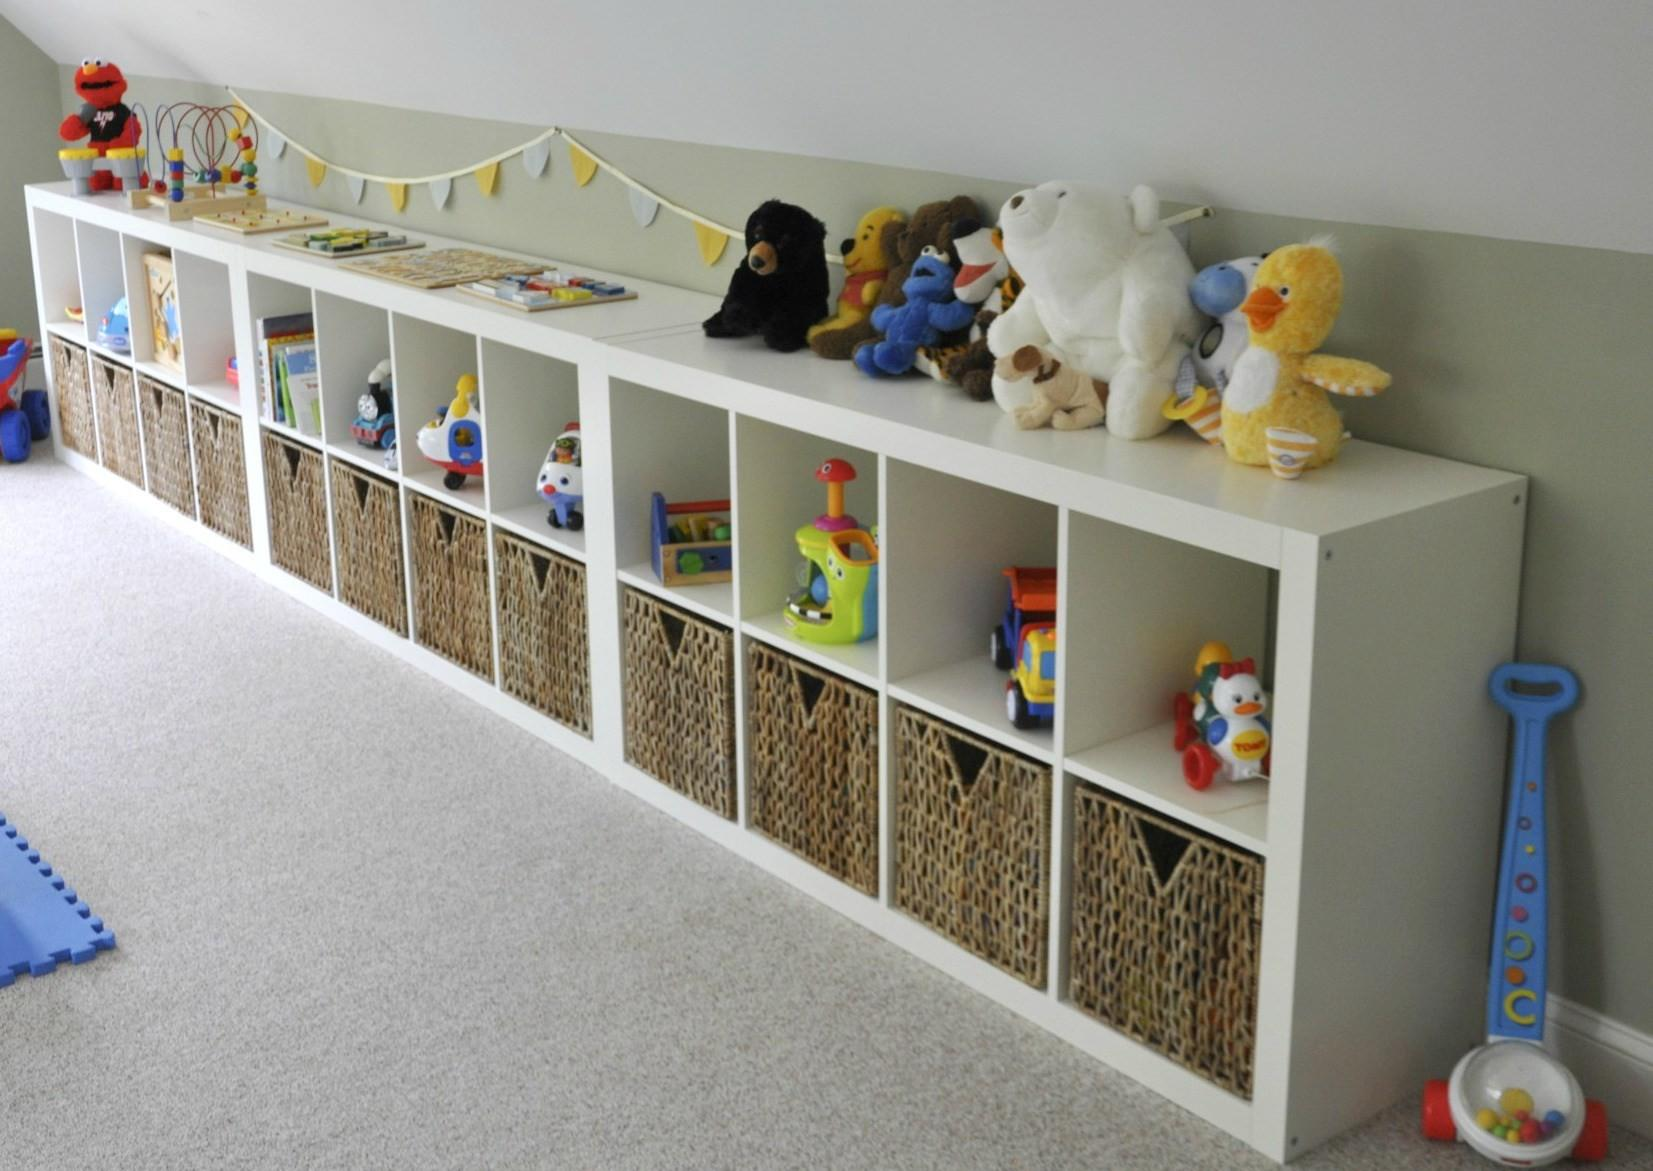 Expedit Playroom Storage Sisters Cities